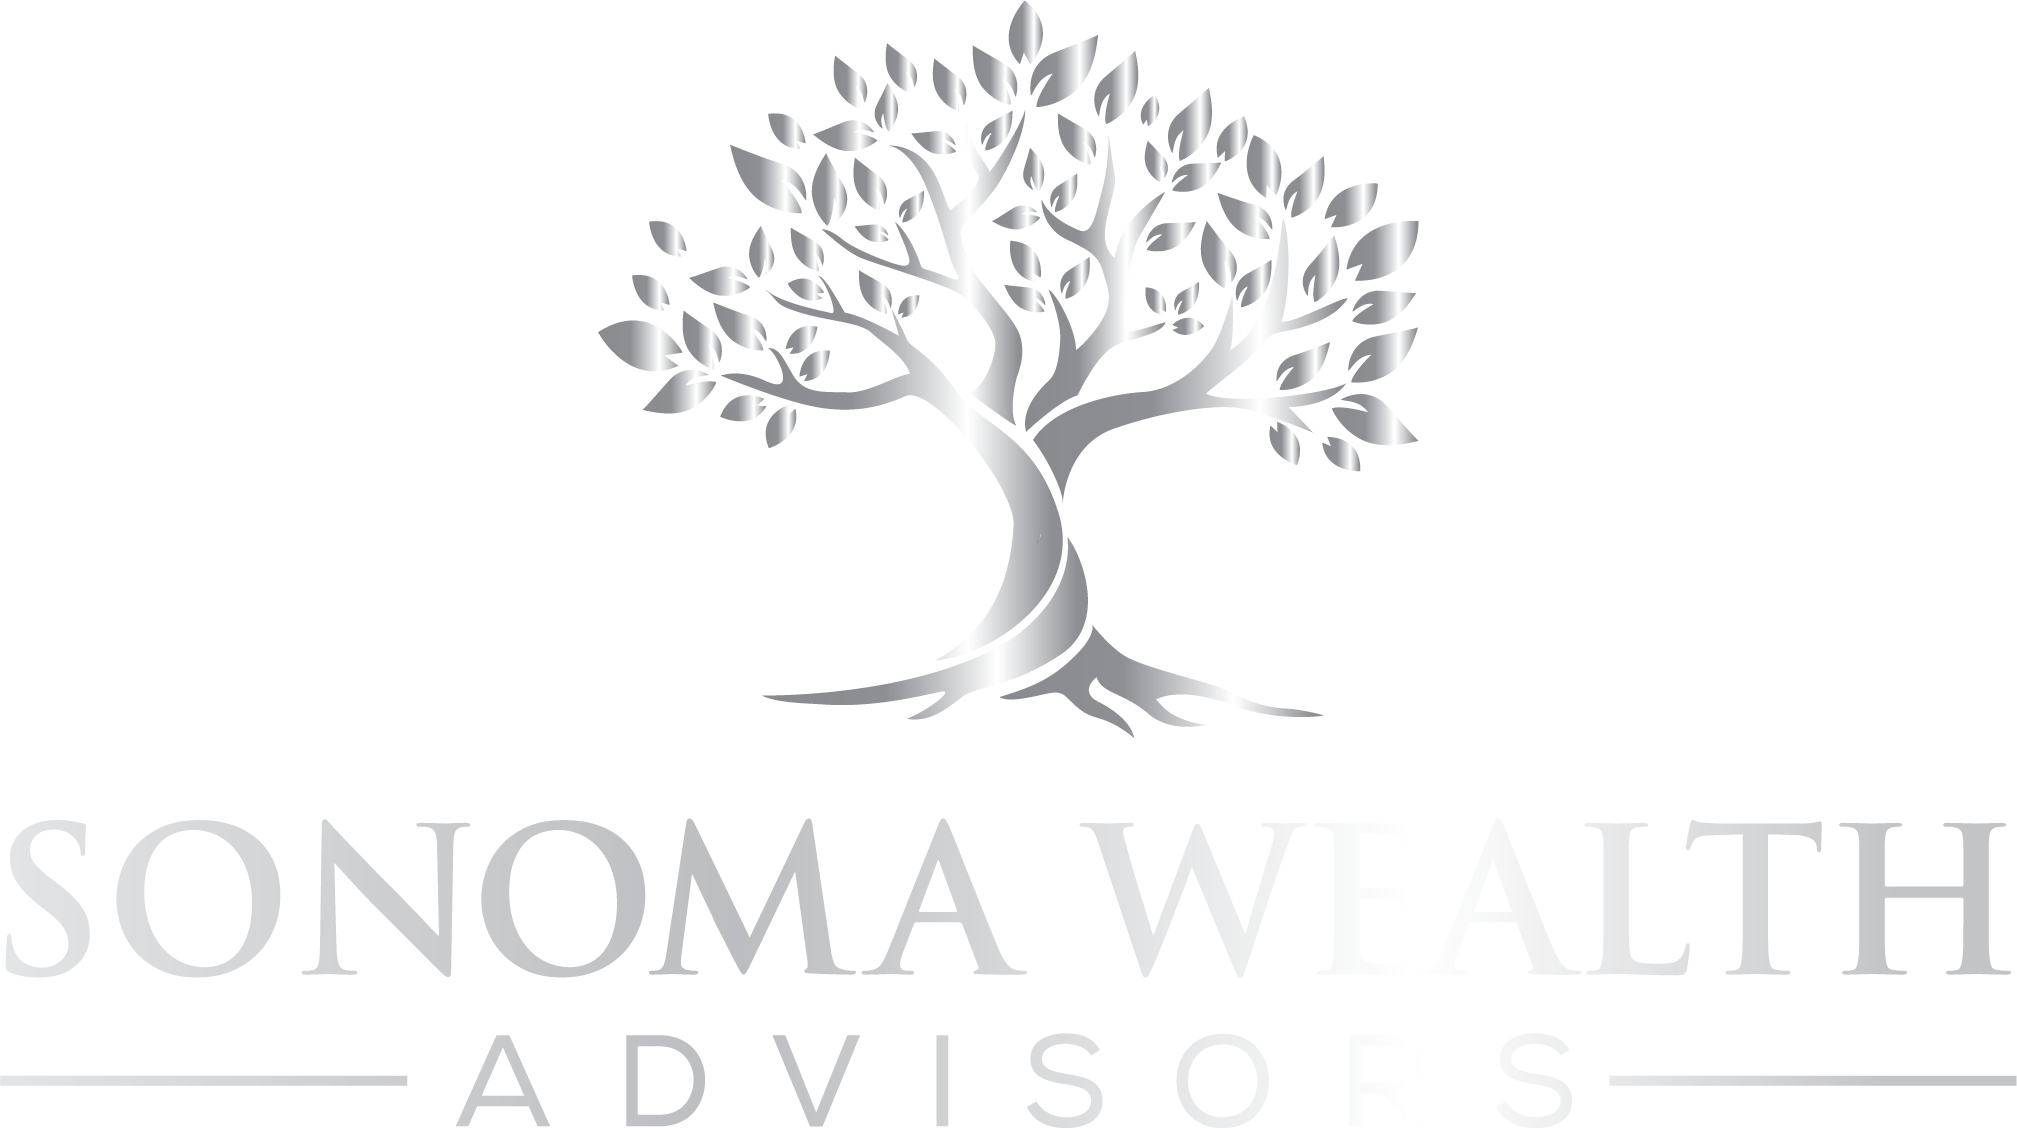 Sonoma Wealth Advisors logo, Sonoma CA, Sonoma Wealth Advisors